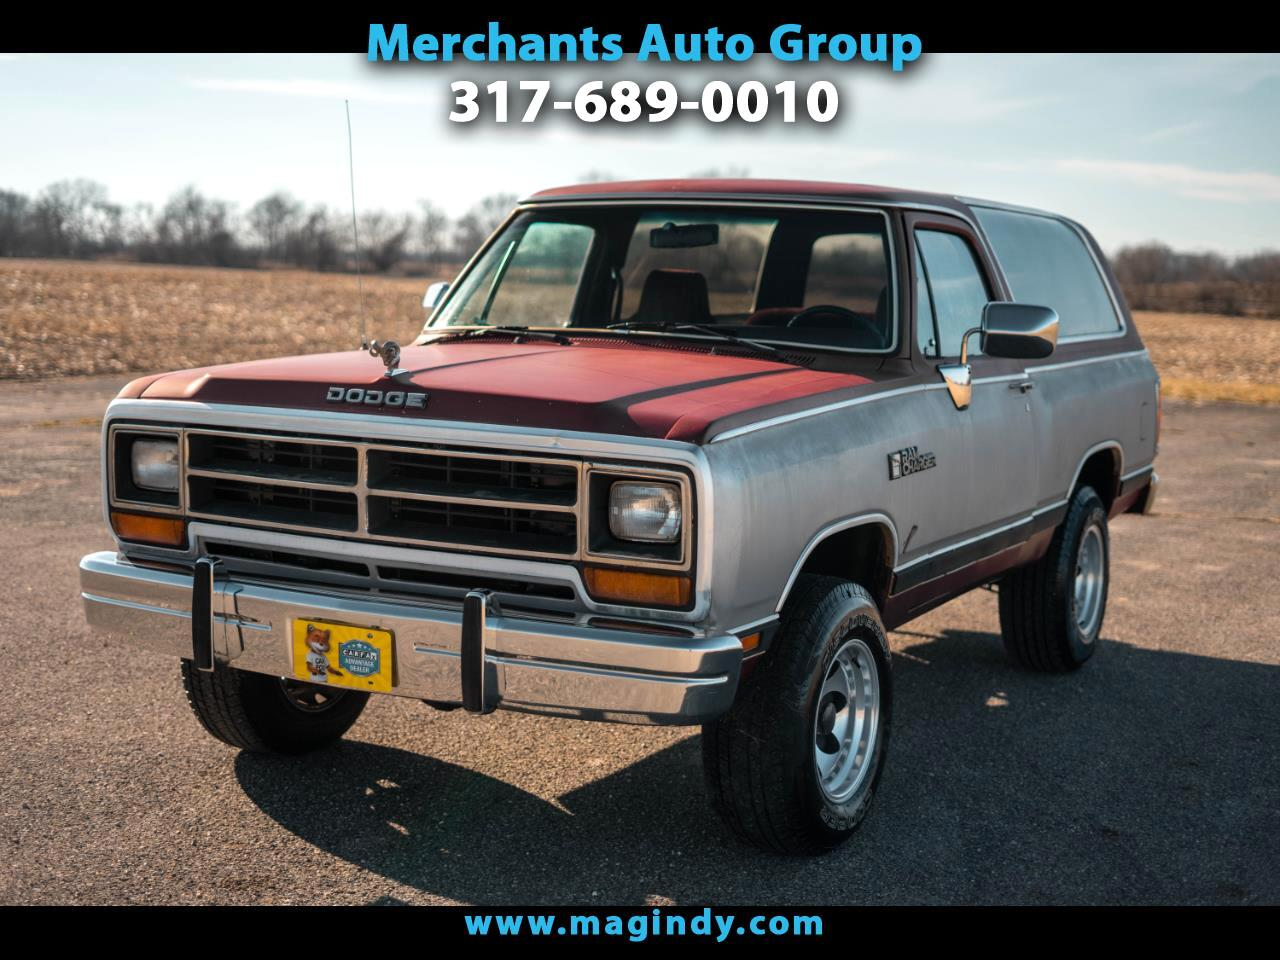 Dodge Ram Charger 150 4WD 1989